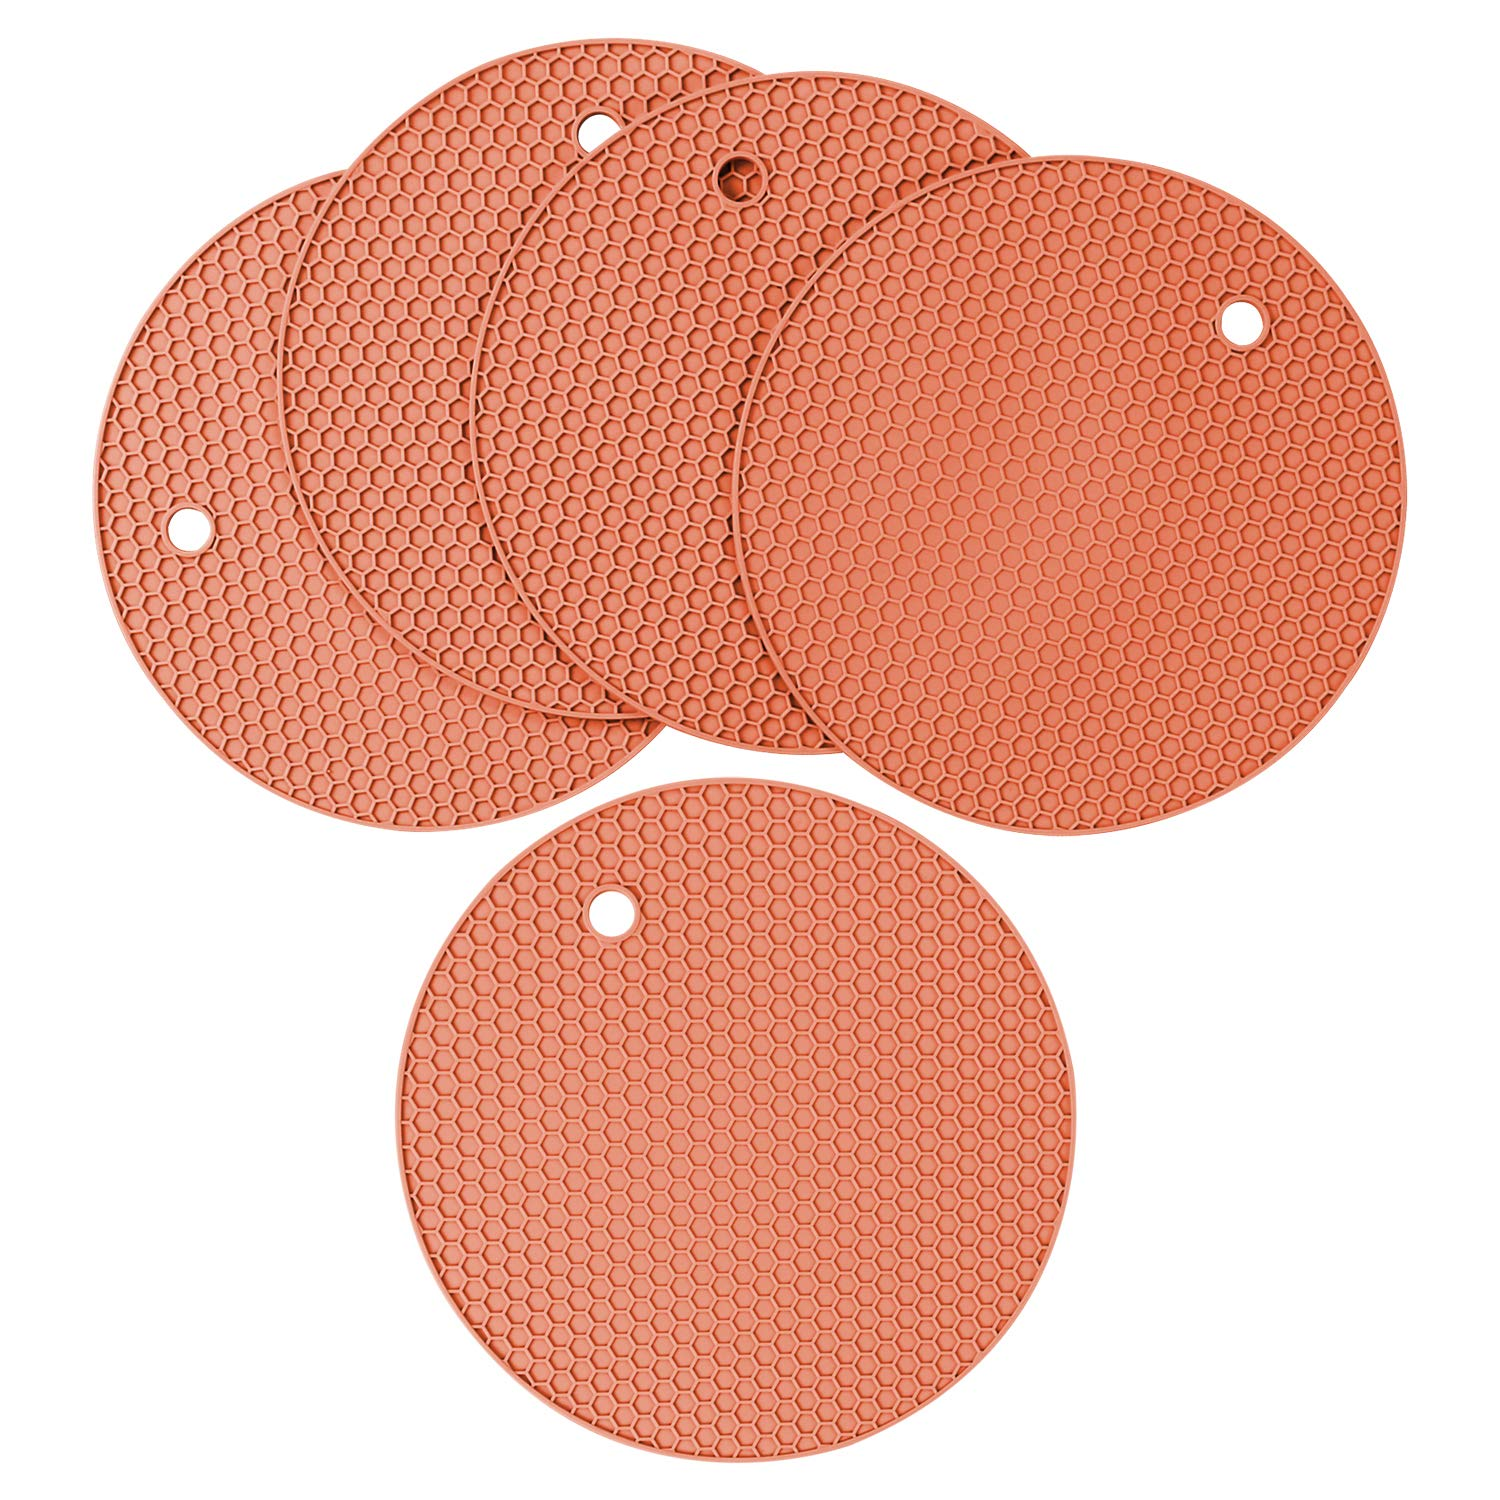 Heat Resistant Antislip Place Mat Multipurpose Non-Slip Insulation Honeycomb Rubber Hot Pads Trivet Silicone Pot Holder and Oven Mitts Coffee Brown Pack of 5